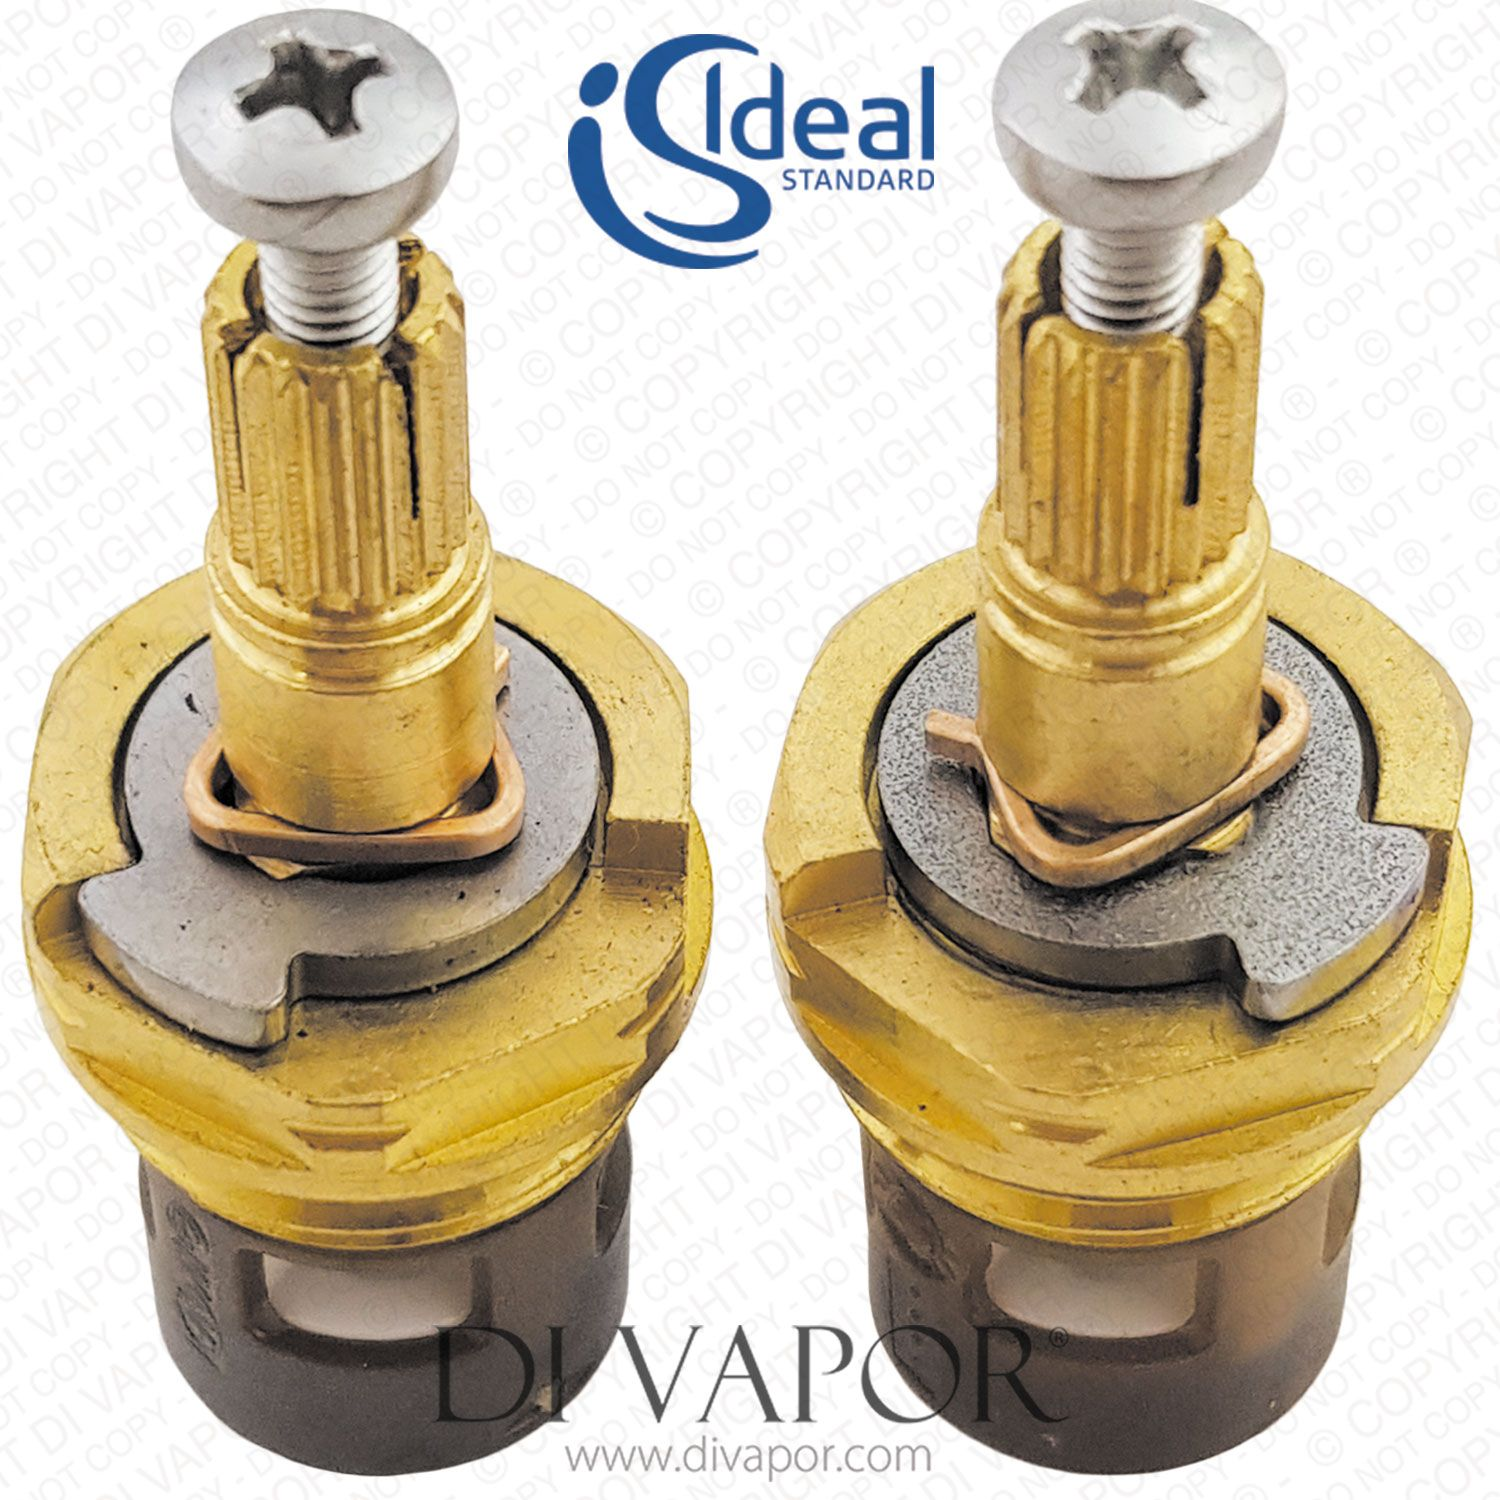 E002467 Pair Of Ideal Standard Trevi 1 2 Inch On Off Ceramic Disc Flow Cartridge For Taps And Shower Valves Shower Valve Ceramics Cartridges